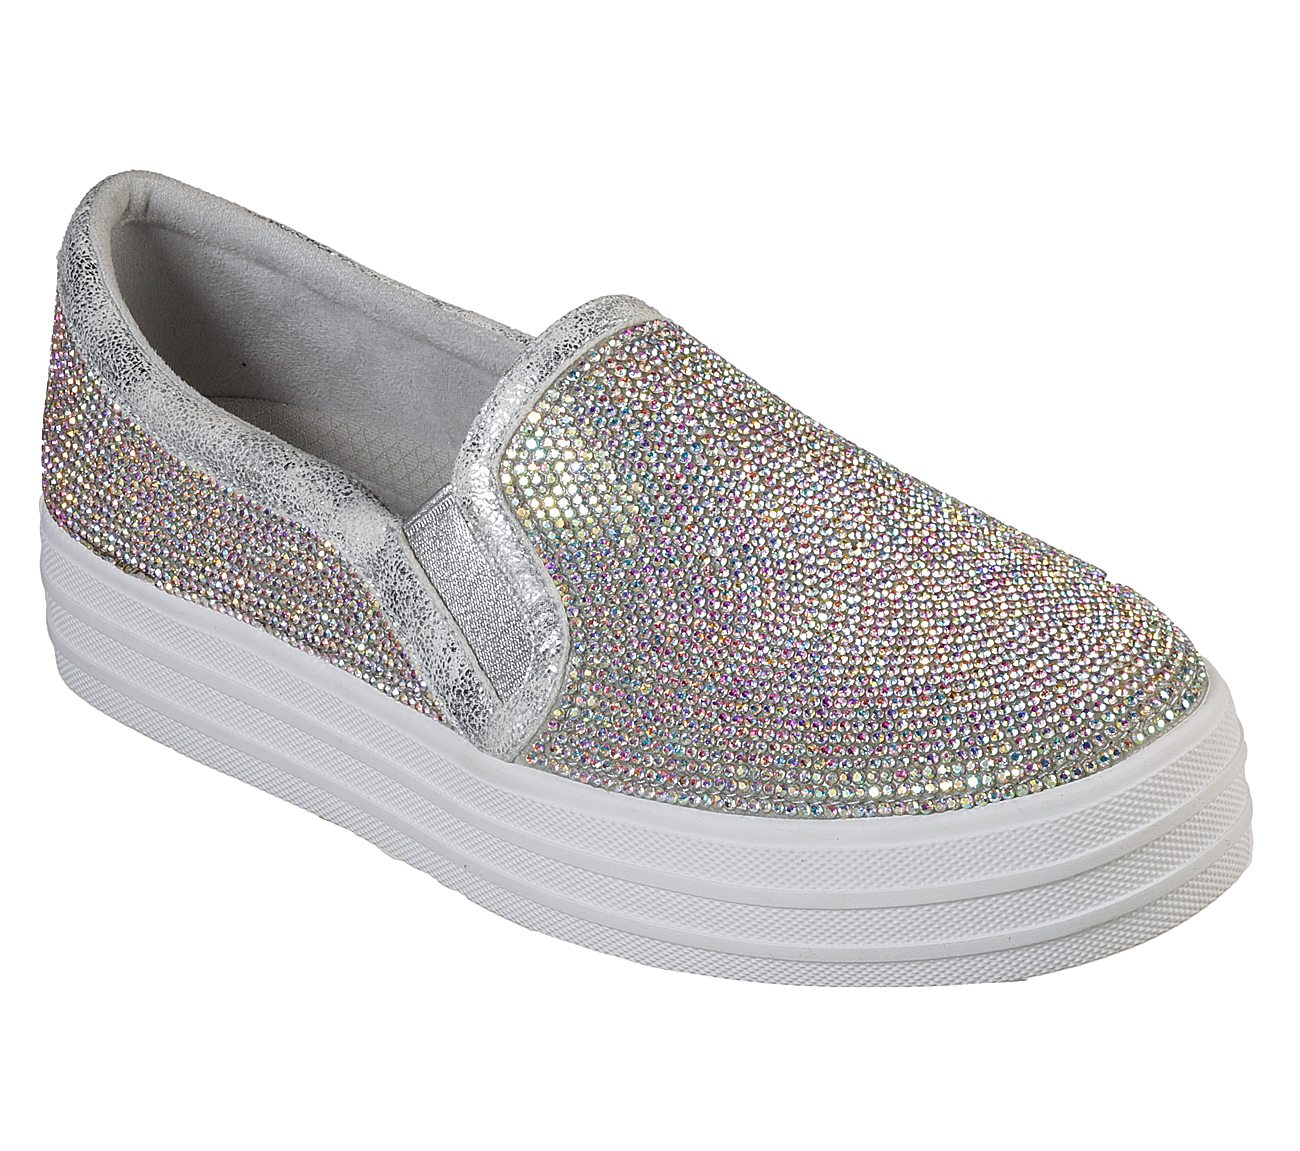 1fa1792c2127 Buy SKECHERS Double Up - Blinders SKECHER Street Shoes only  55.00